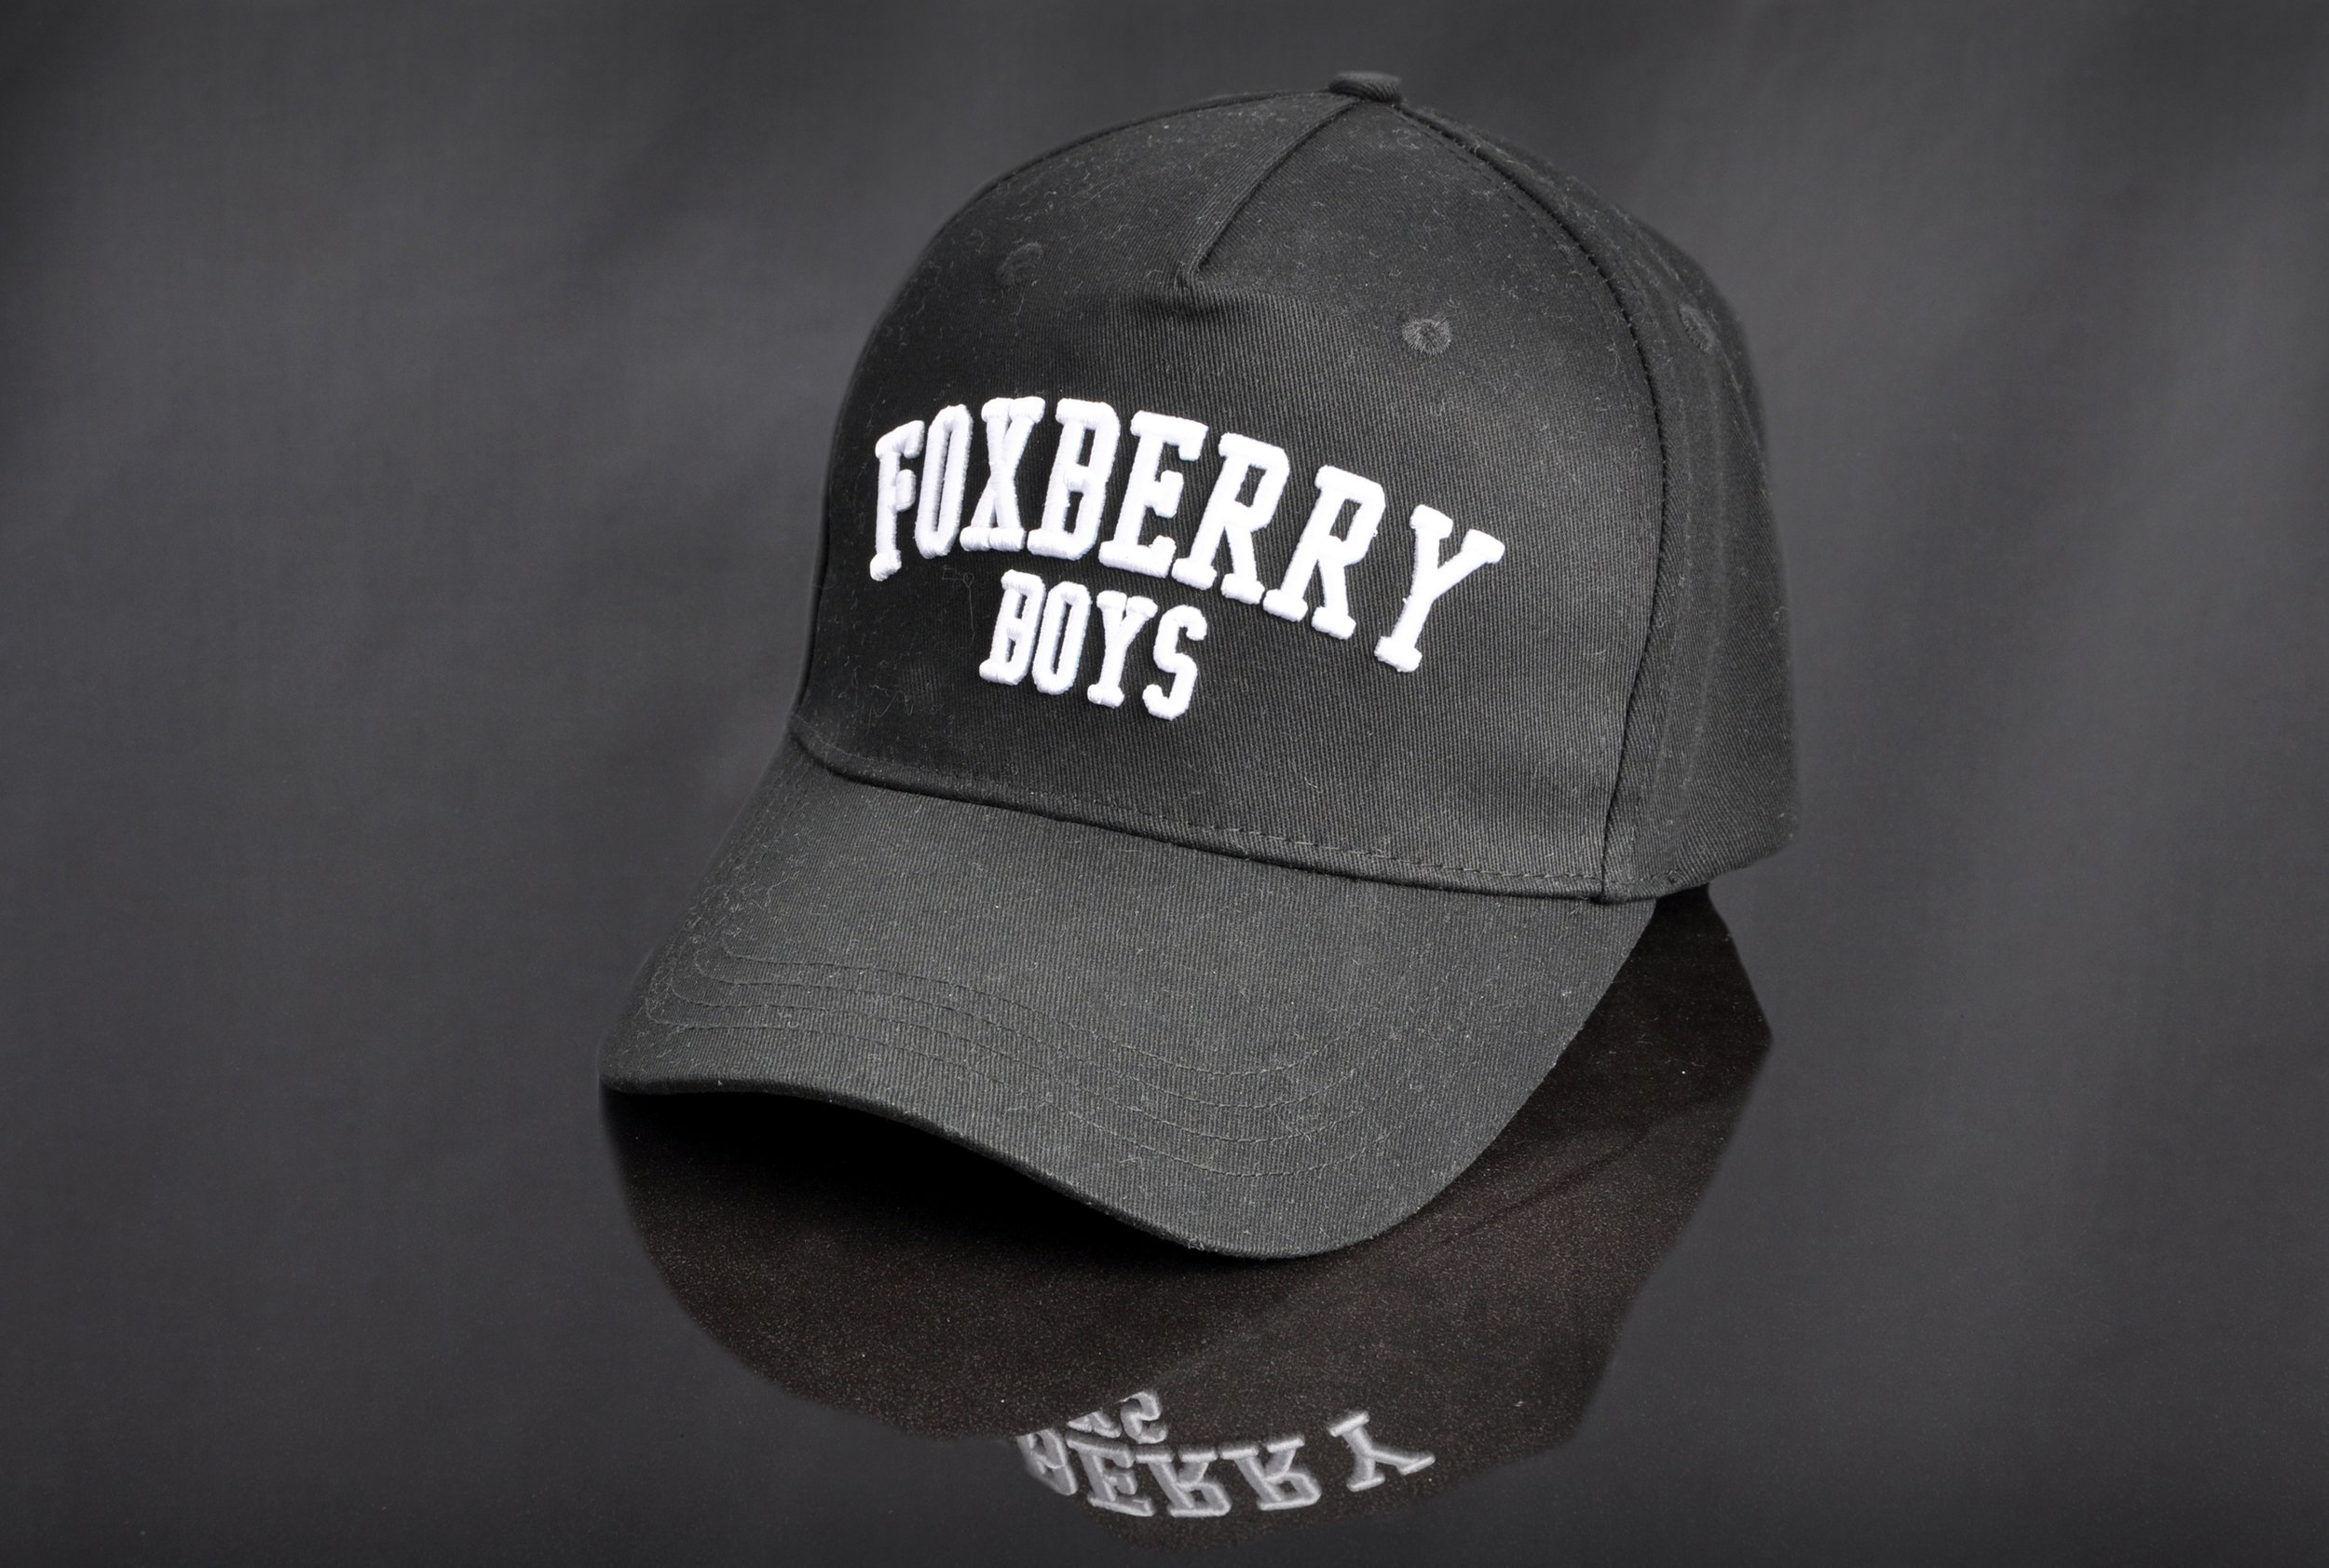 Premium Quality - Sports Luxe Baseball Cap